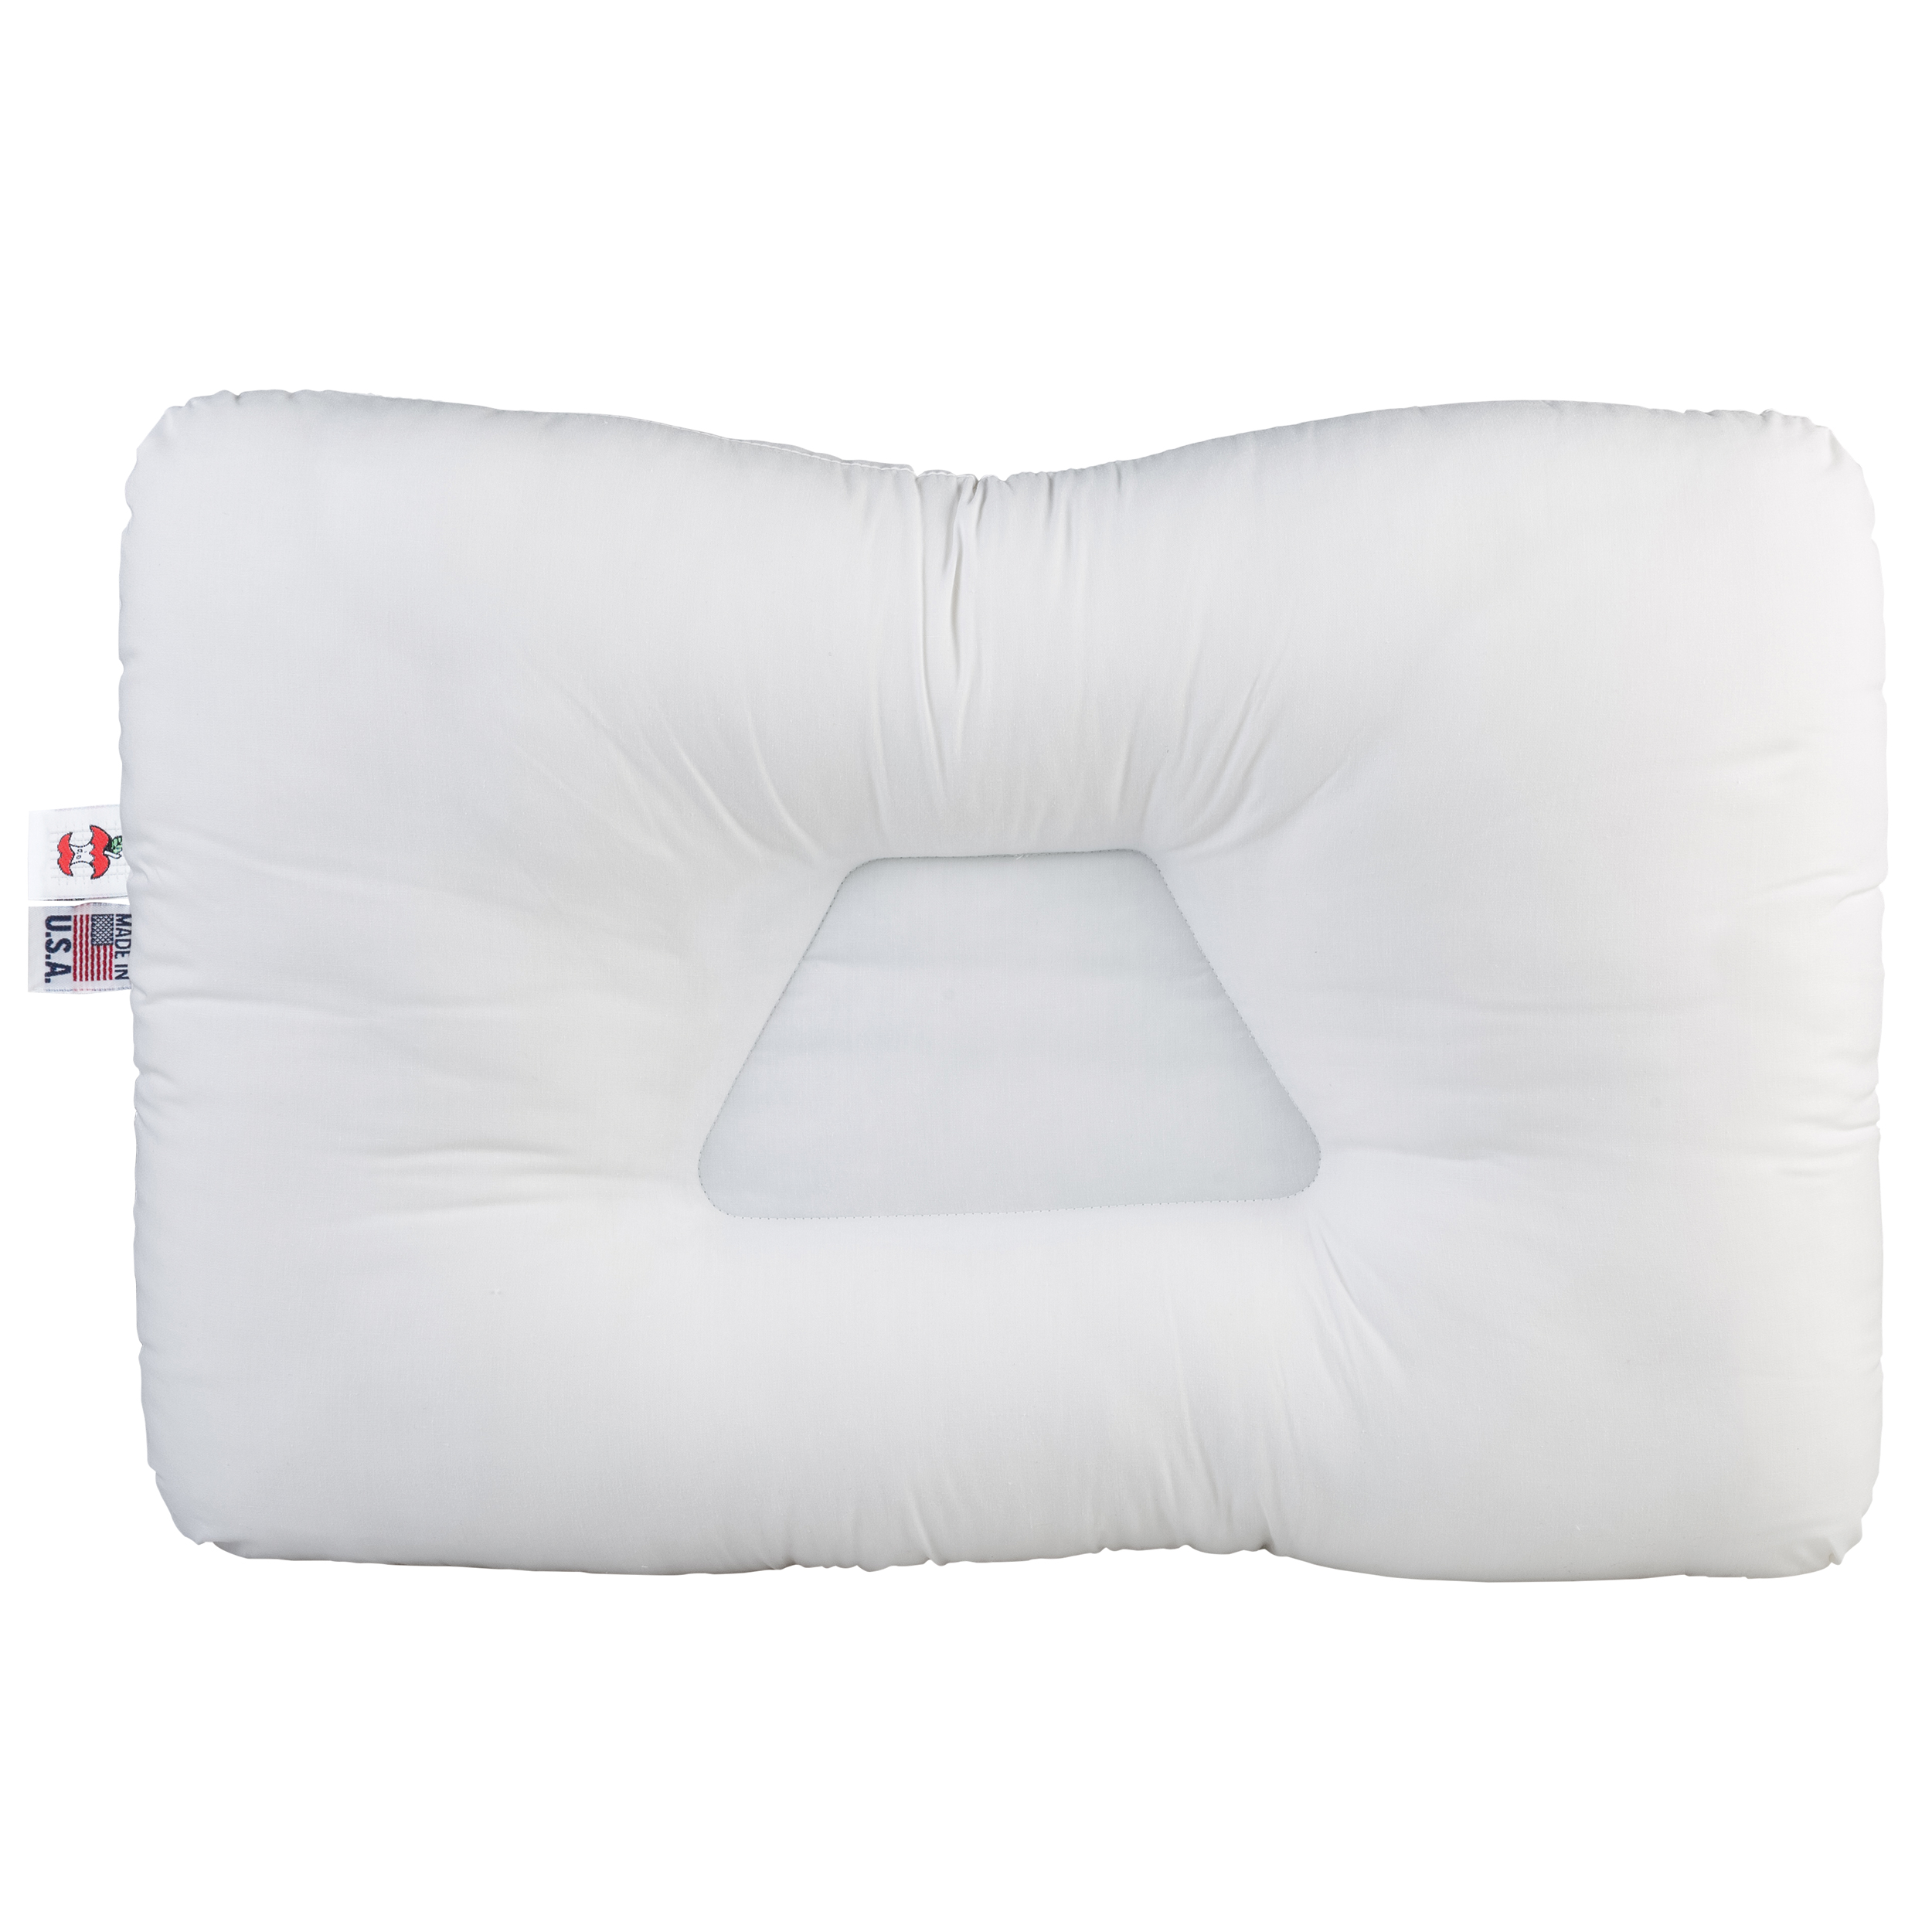 Core Products Tri Core Neck Support Pillow Made In The